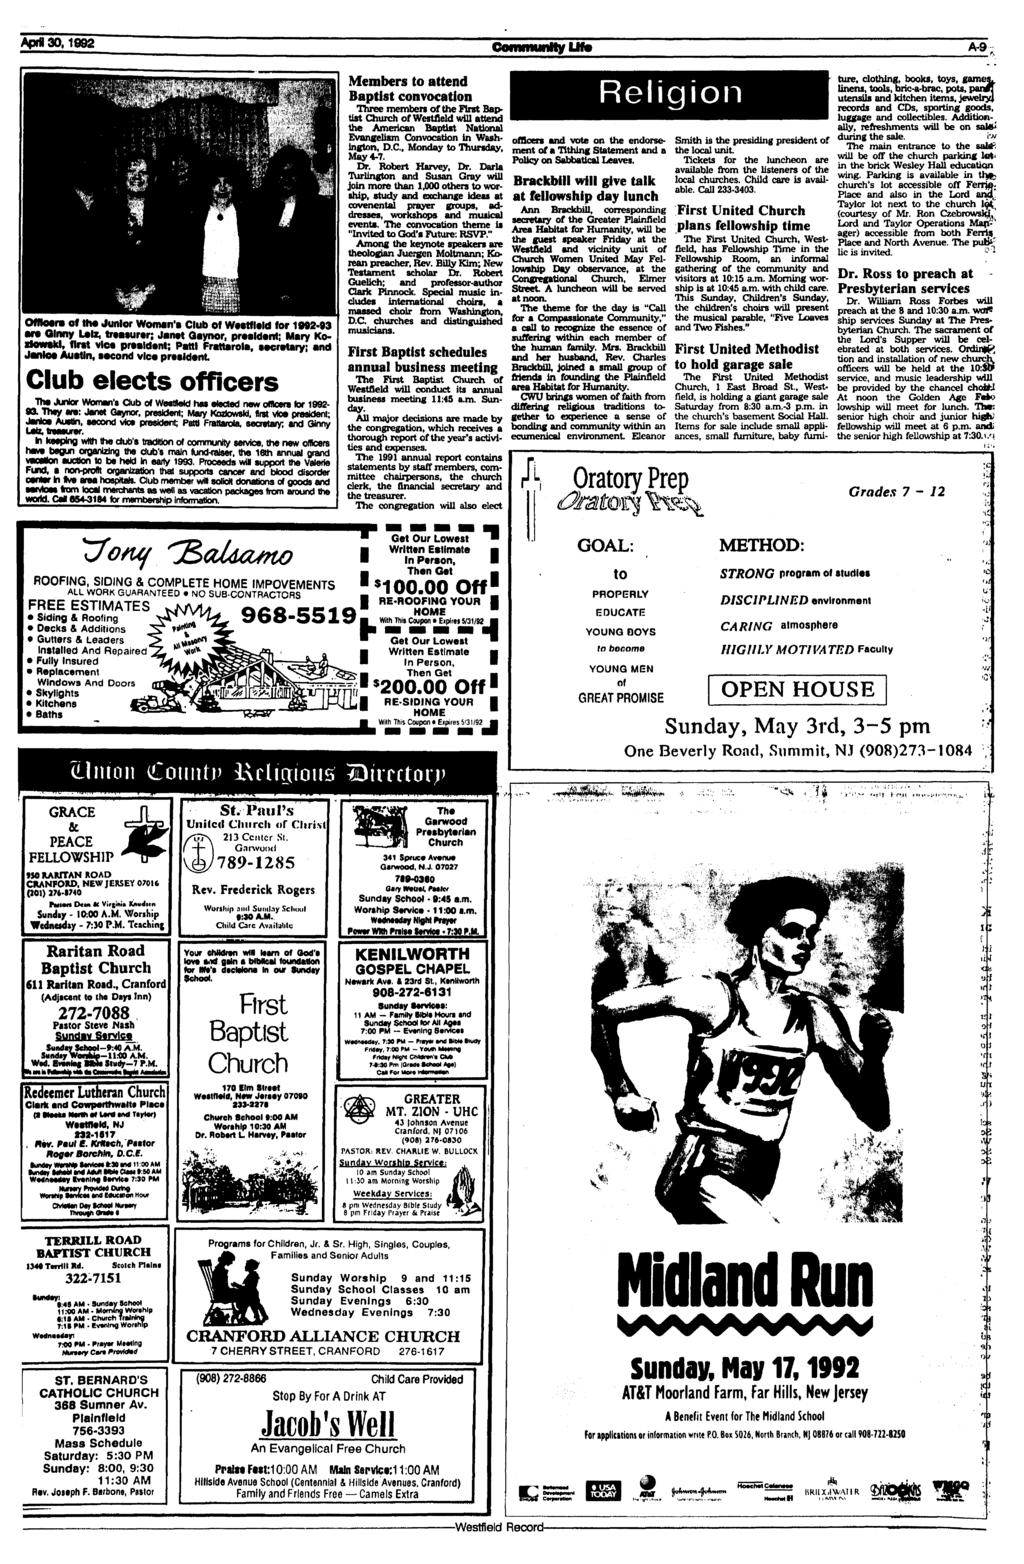 Thefestfield record pdf apr 301992 community un a 9 officers off thjunior womans fandeluxe Choice Image